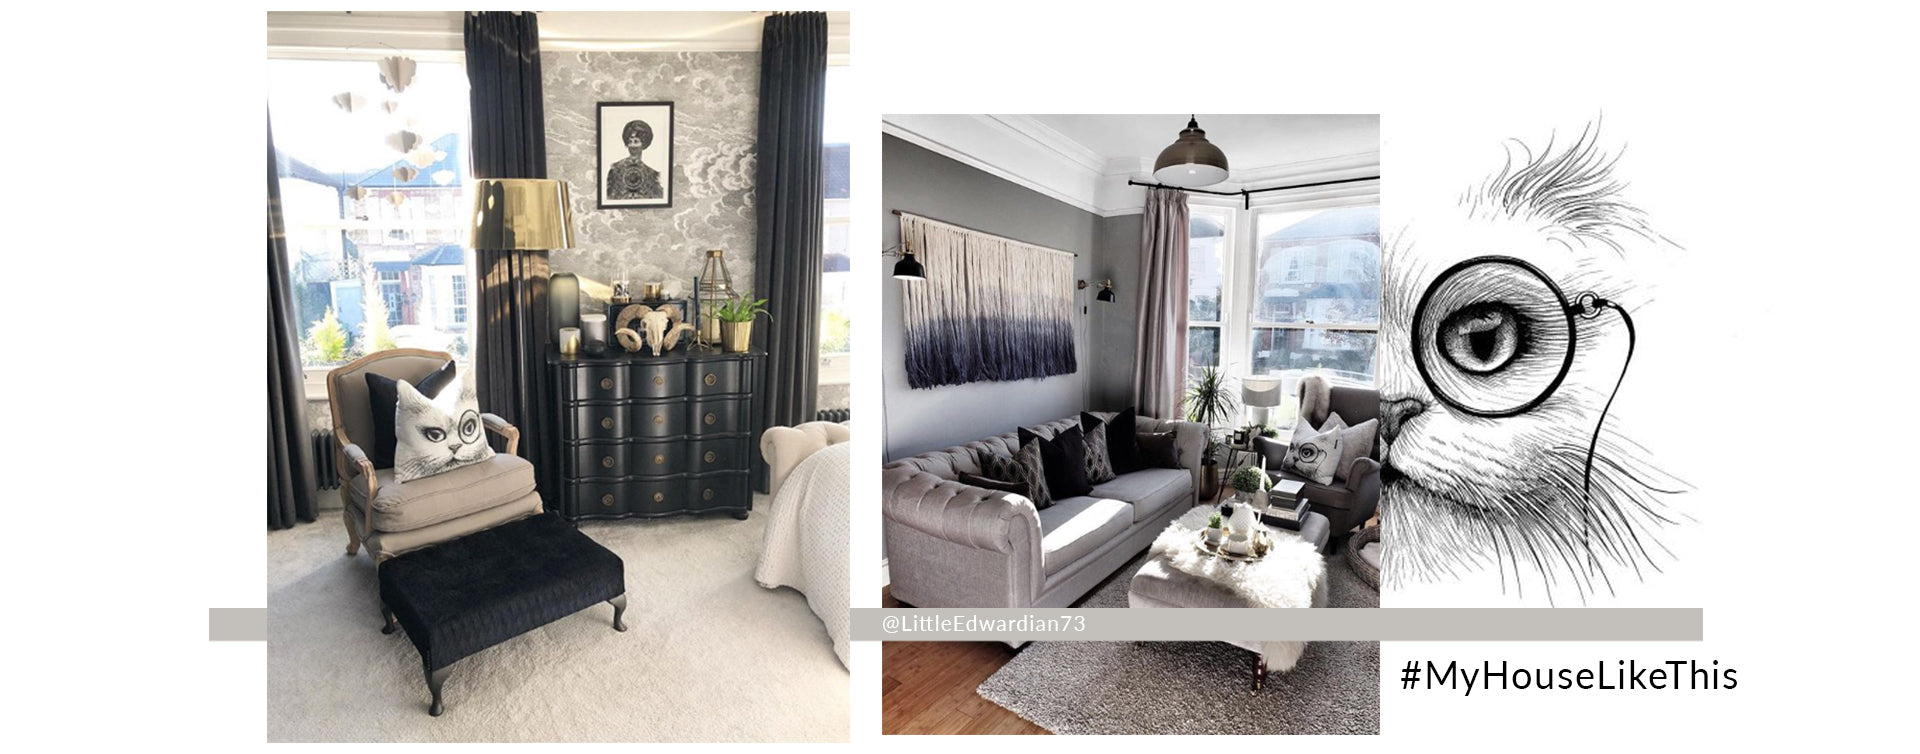 MYHOUSELIKETHIS features LittleEdwardian73 - a home with fornasetti inspired wallpaper, dark glamour and monochrome decor